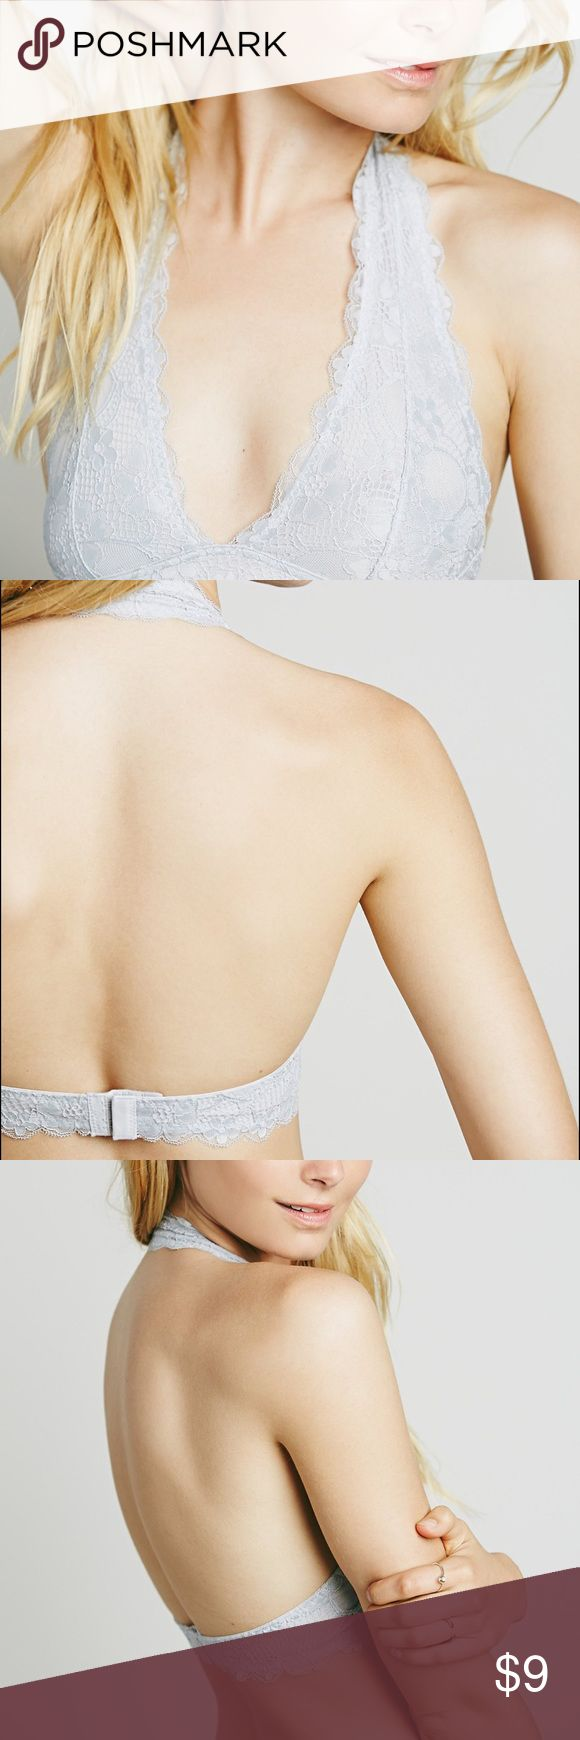 Free People Galloon Lace Halter Bra in Light Grey NWOT.  Stretchy and soft lace halter bralette with plunging neckline. Mesh lining. Gives goid support even without an underwire. Scalloped edges. The halter straps slip over the head. Double hook and eye closure on the back. Free People Intimates & Sleepwear Bras